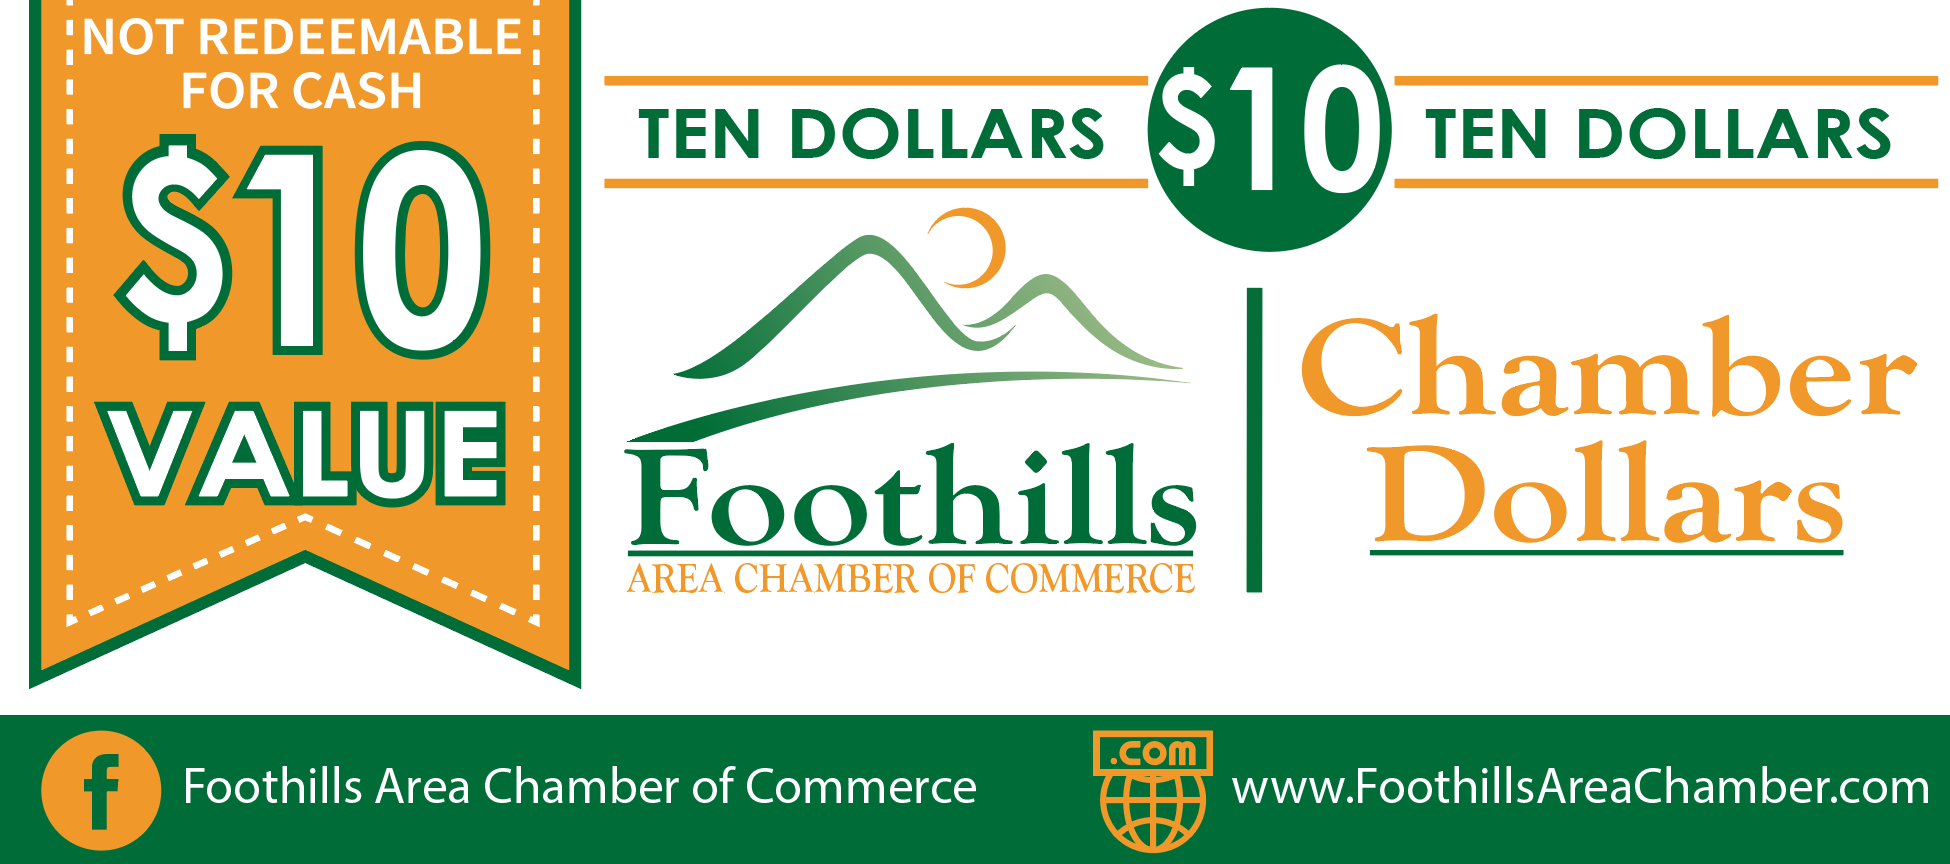 Foothills Area Chamber of Commerce Chamber Dollars